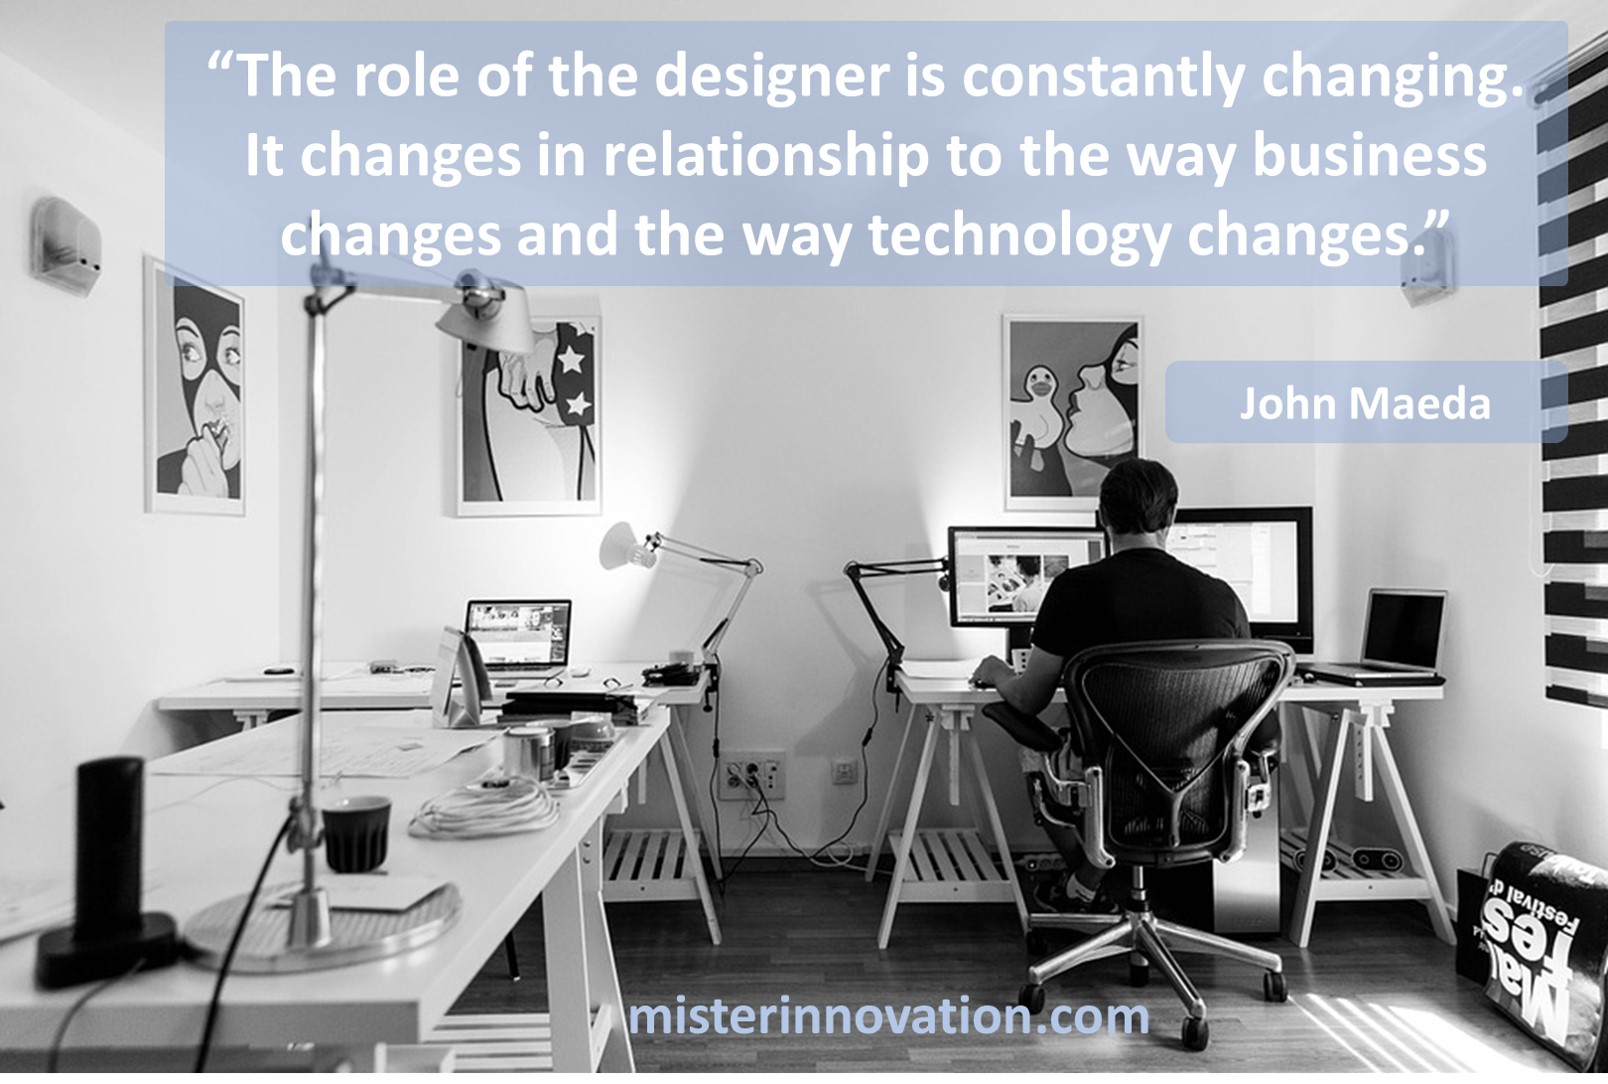 John Maeda Quote on the Changing Role of the Designer